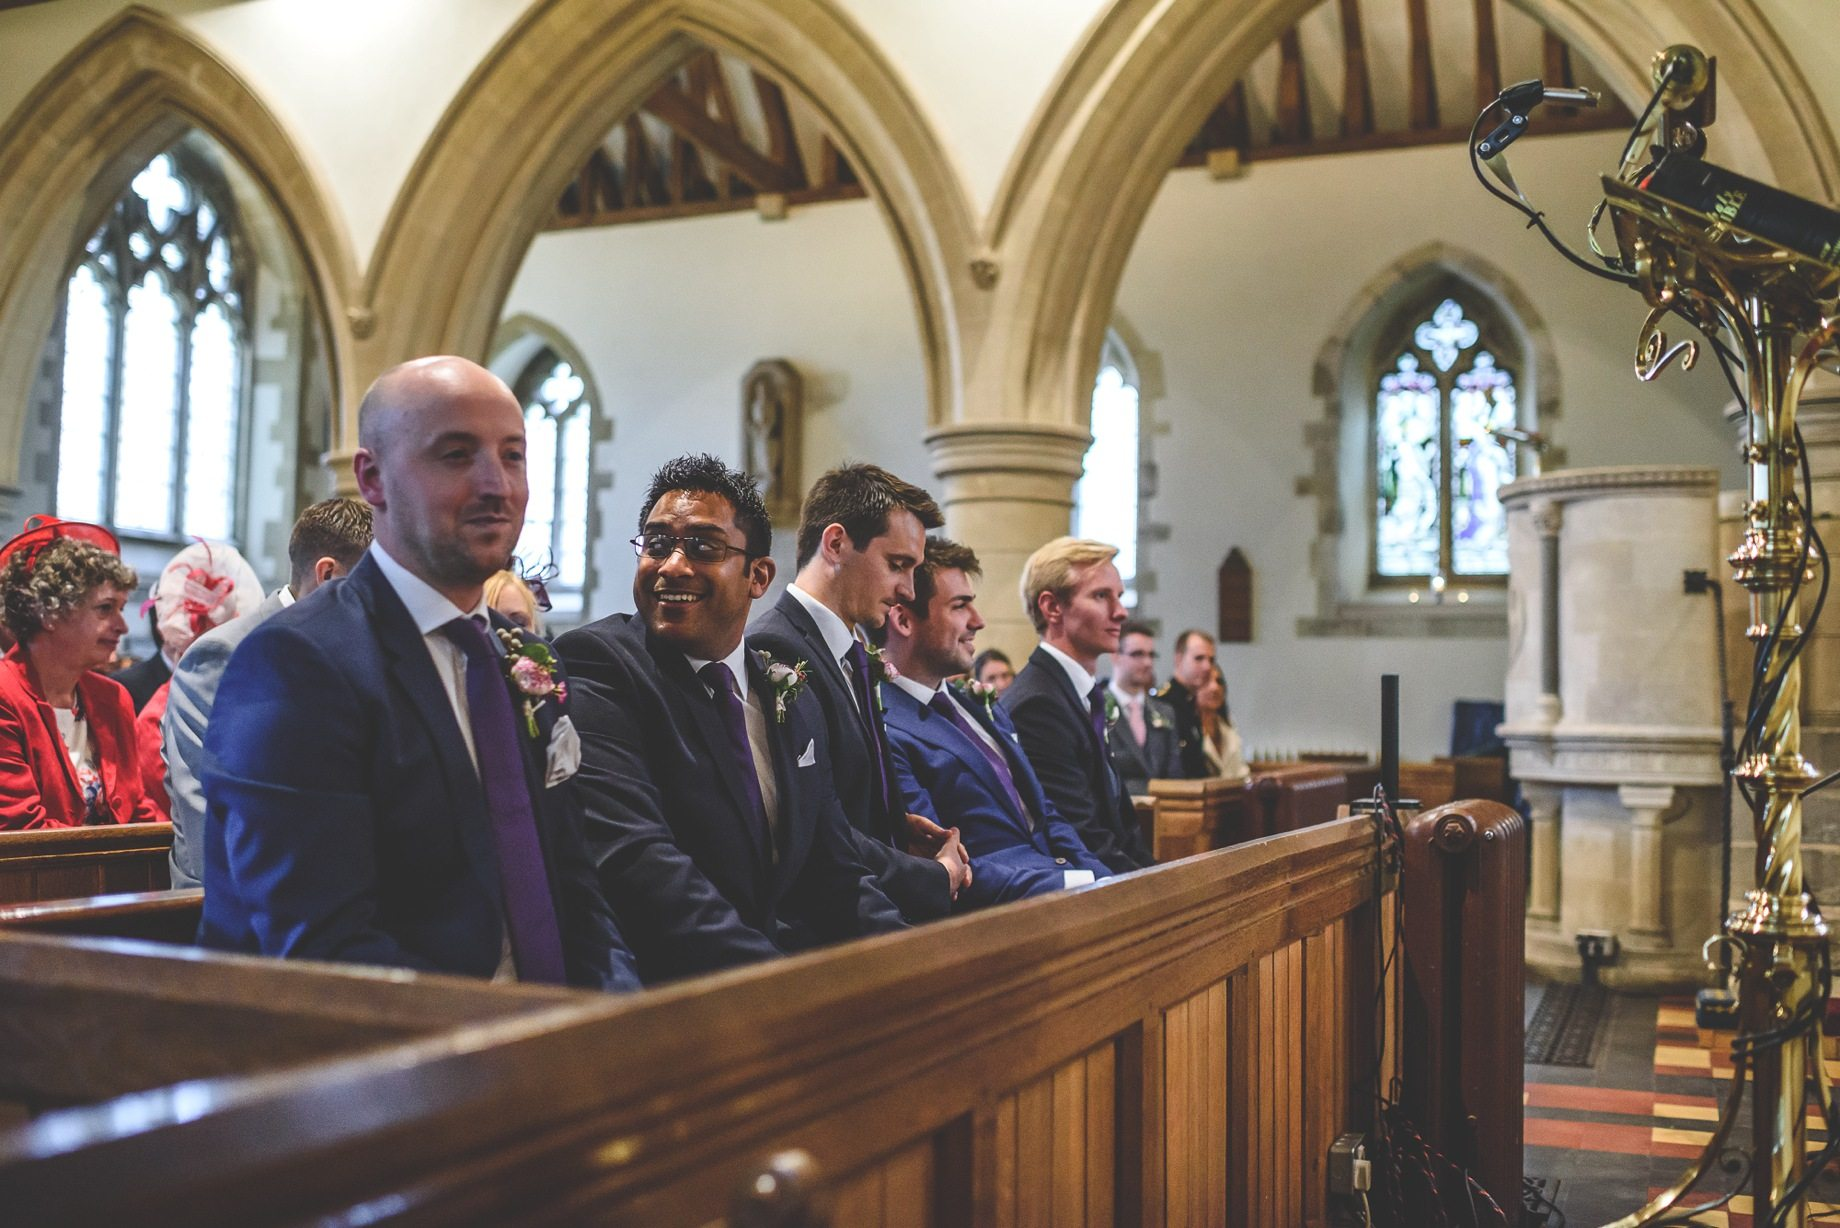 Heather and Chris - Hampshire wedding photography (82 of 174)